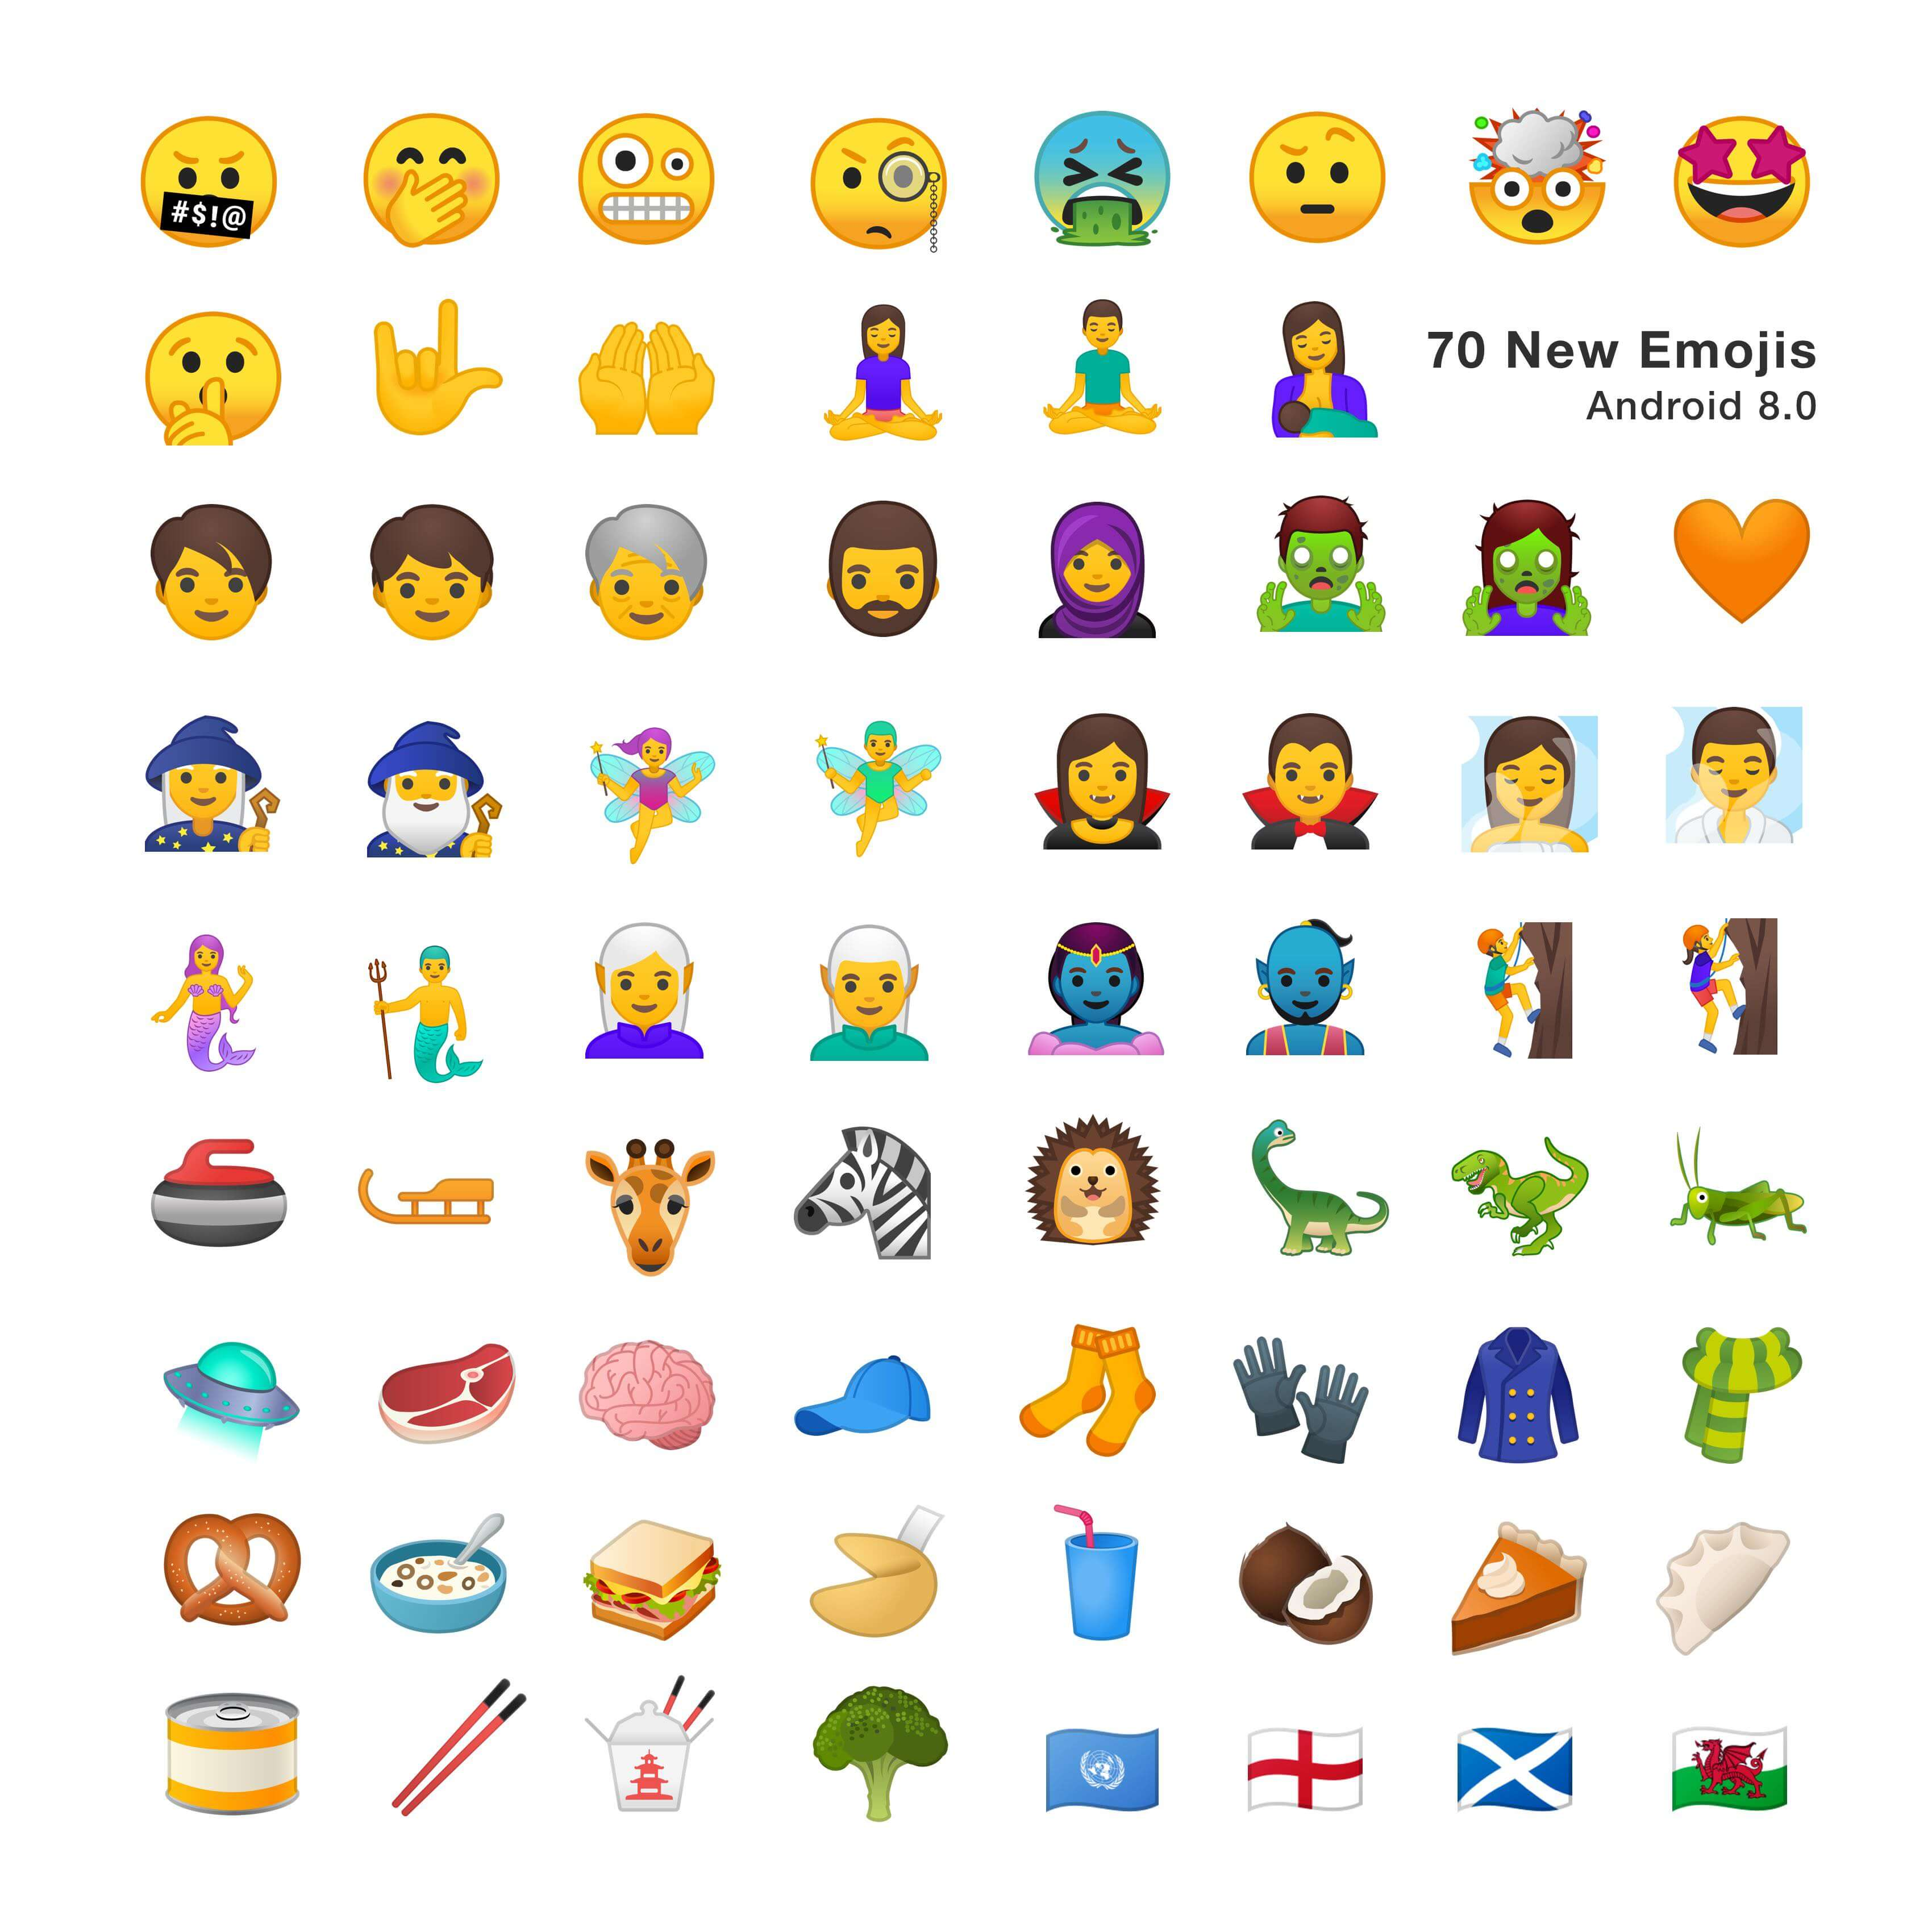 new emojis for android 8.0